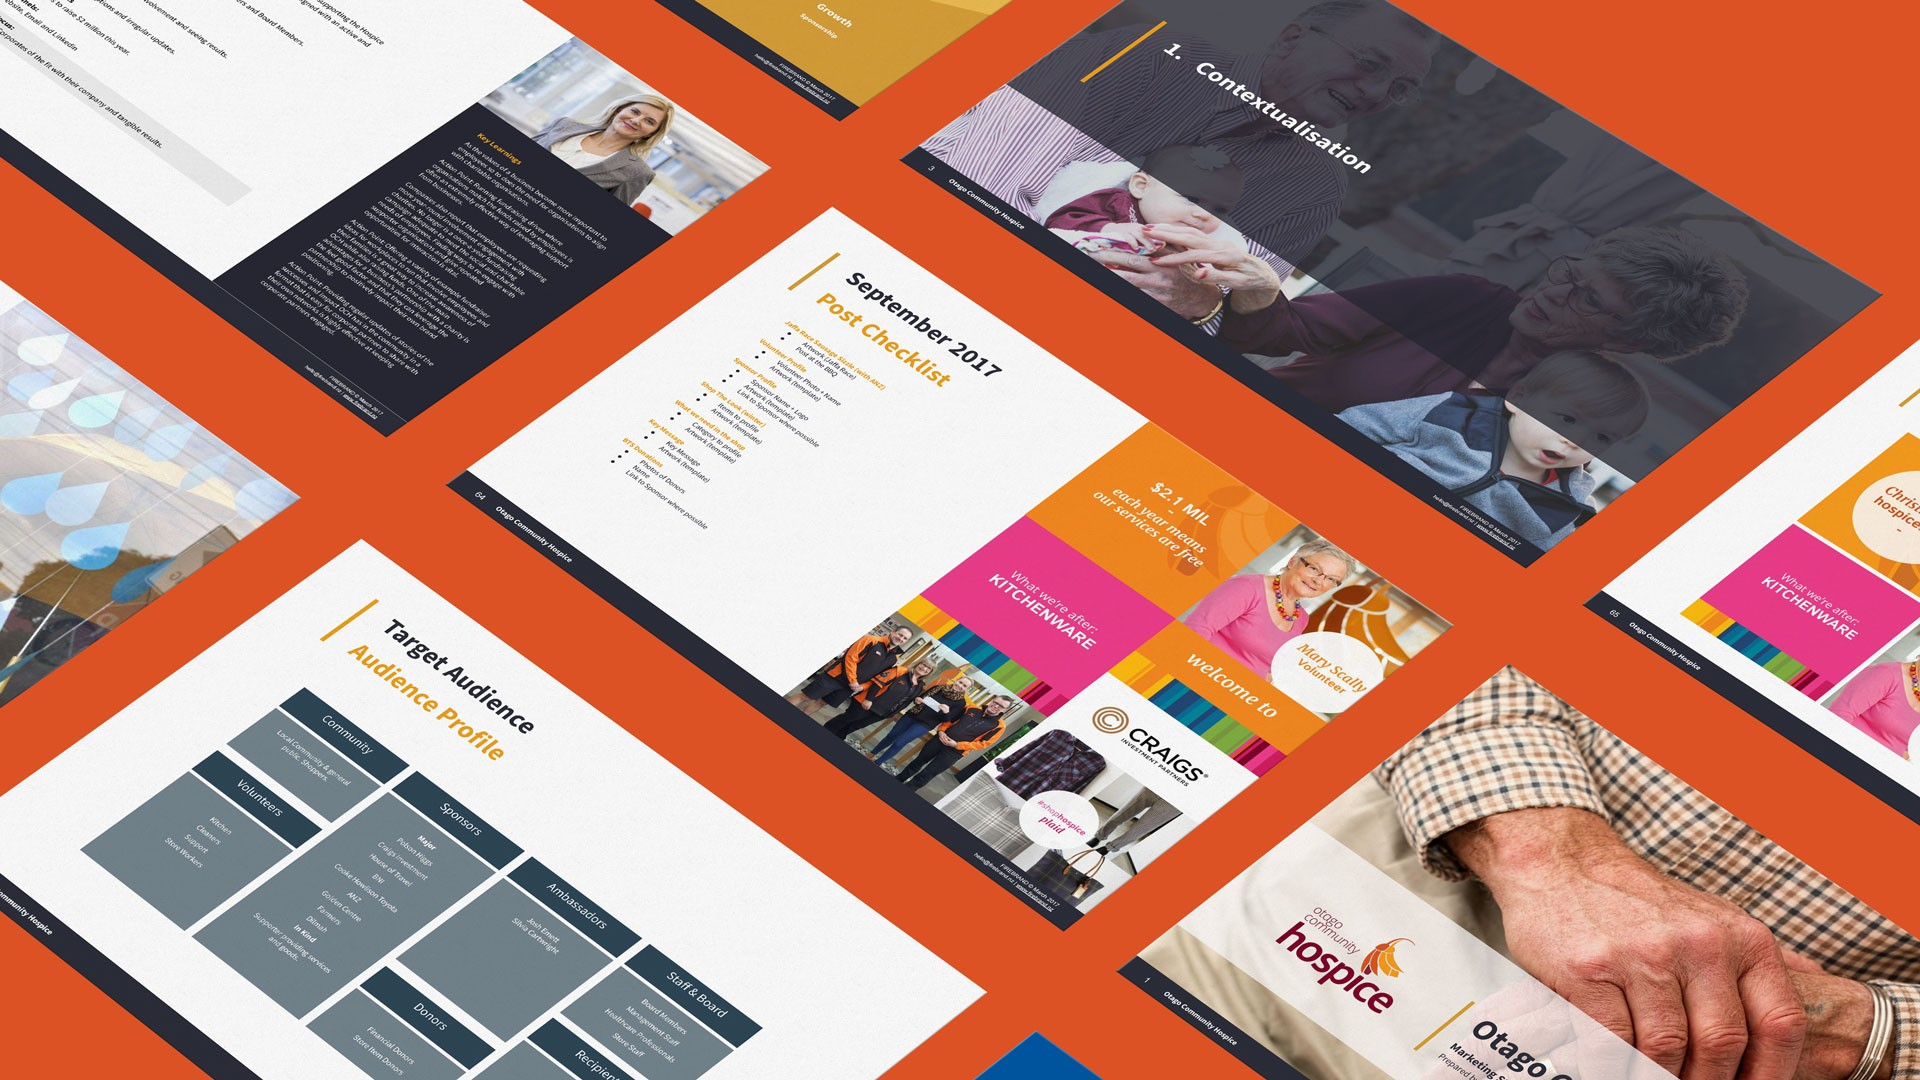 Otago C Hospice 03 A4 Page horizontal orange